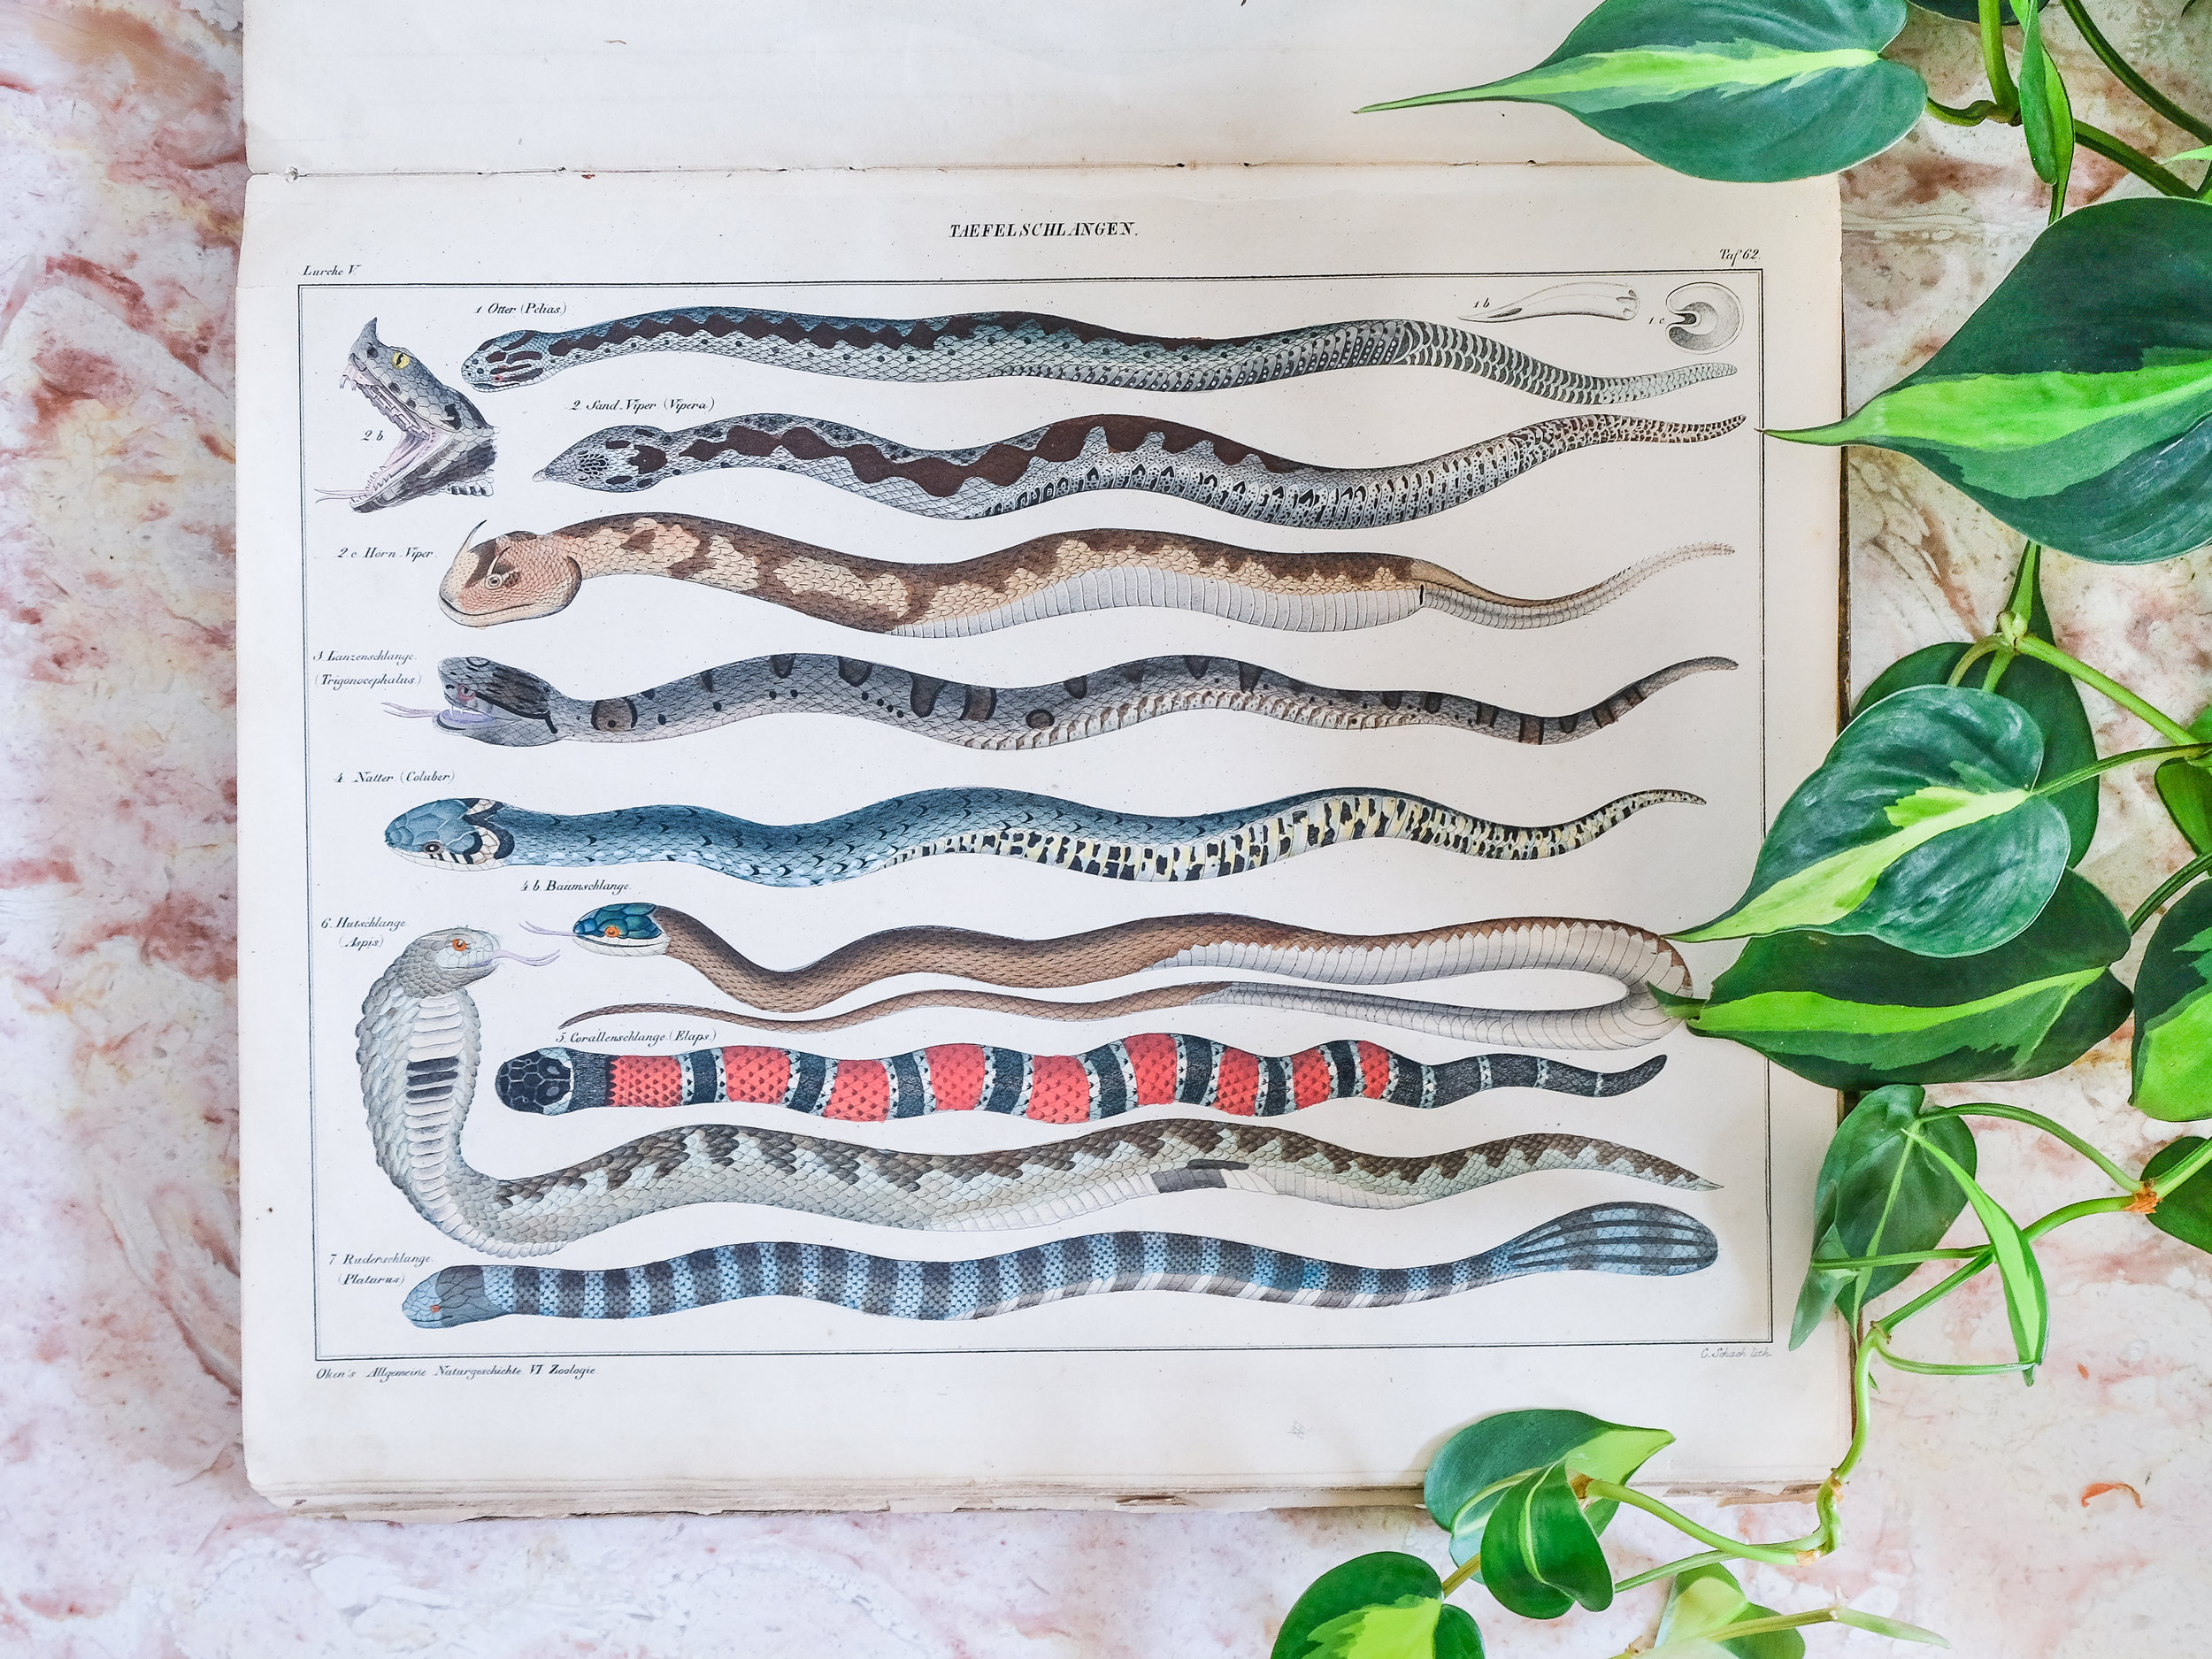 While a lot of people break up old books, I've kept this antique book of wildlife prints in tact. I may break it apart one day so that I can frame some of these beautiful prints, but  for now I like to flip through for inspiration. The pages of snake drawings are amazing.